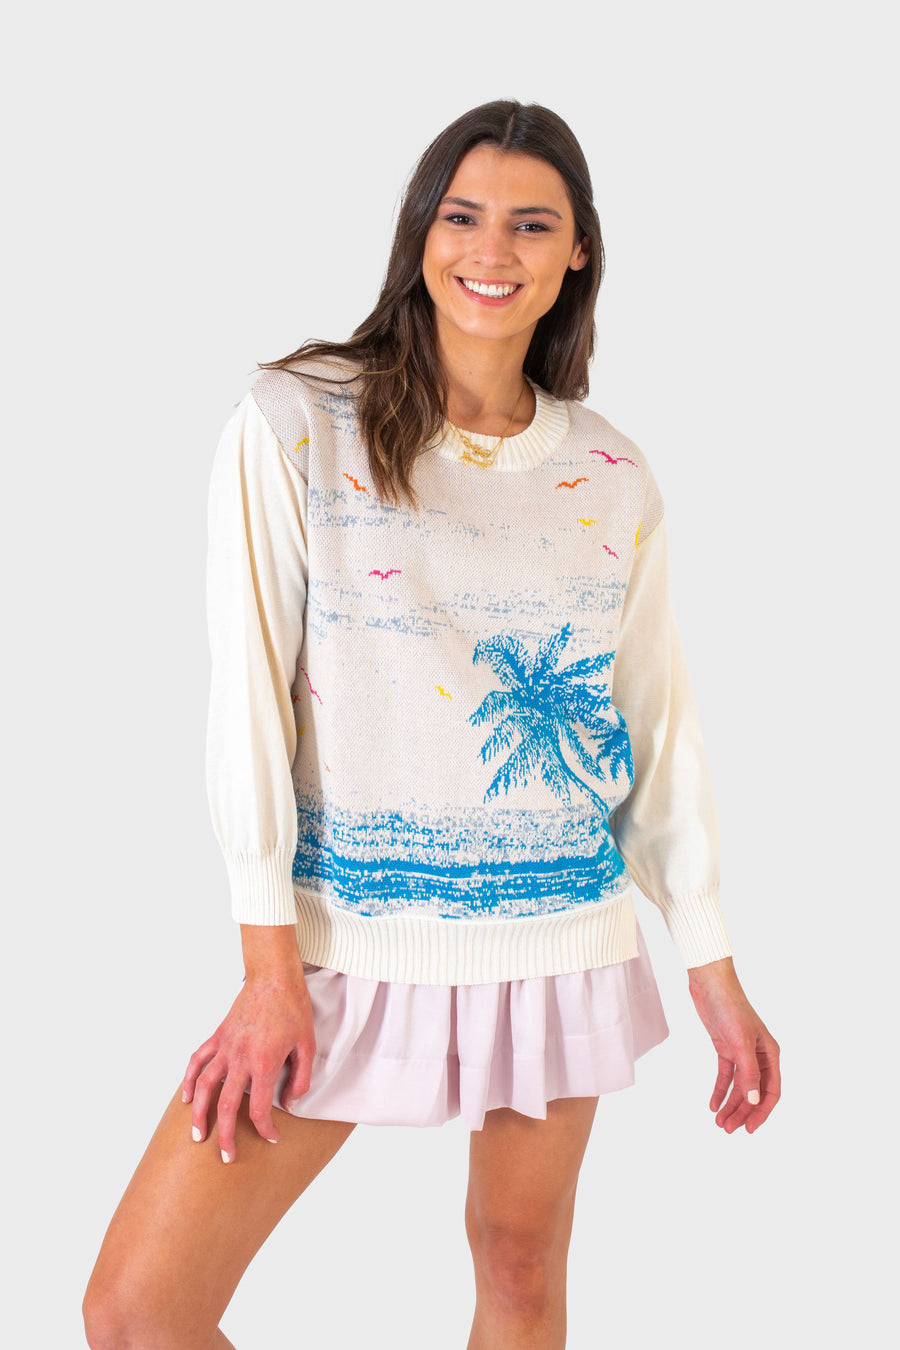 TREVI SWEATER BEACH SCENE *LIMITED*EDITION*